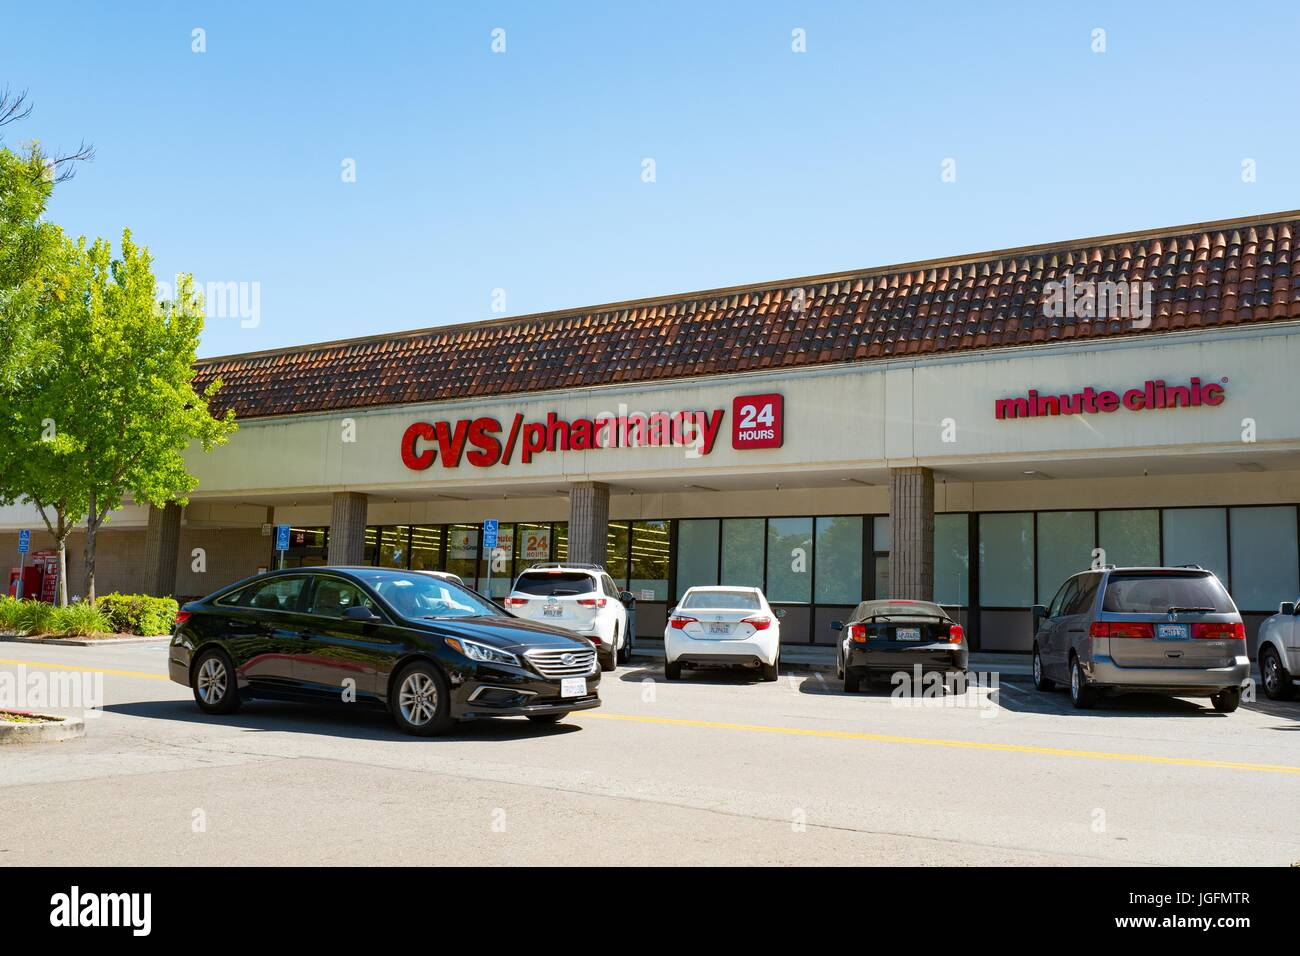 pharmacy in car stock photos  u0026 pharmacy in car stock